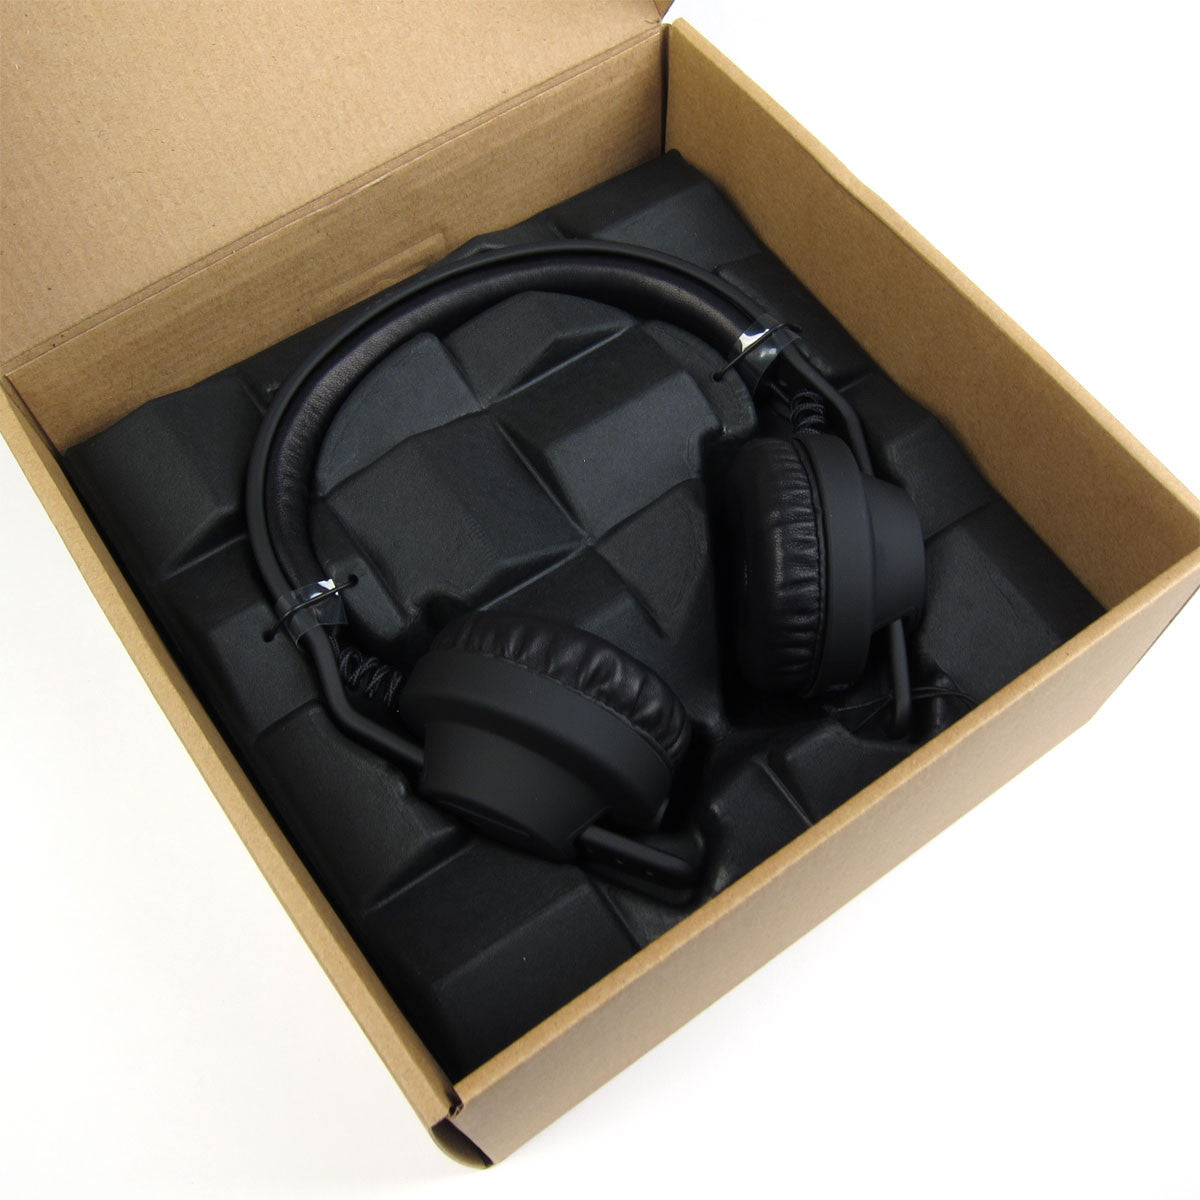 AIAIAI: TMA-1 Ghostly Edition DJ Headphones open box